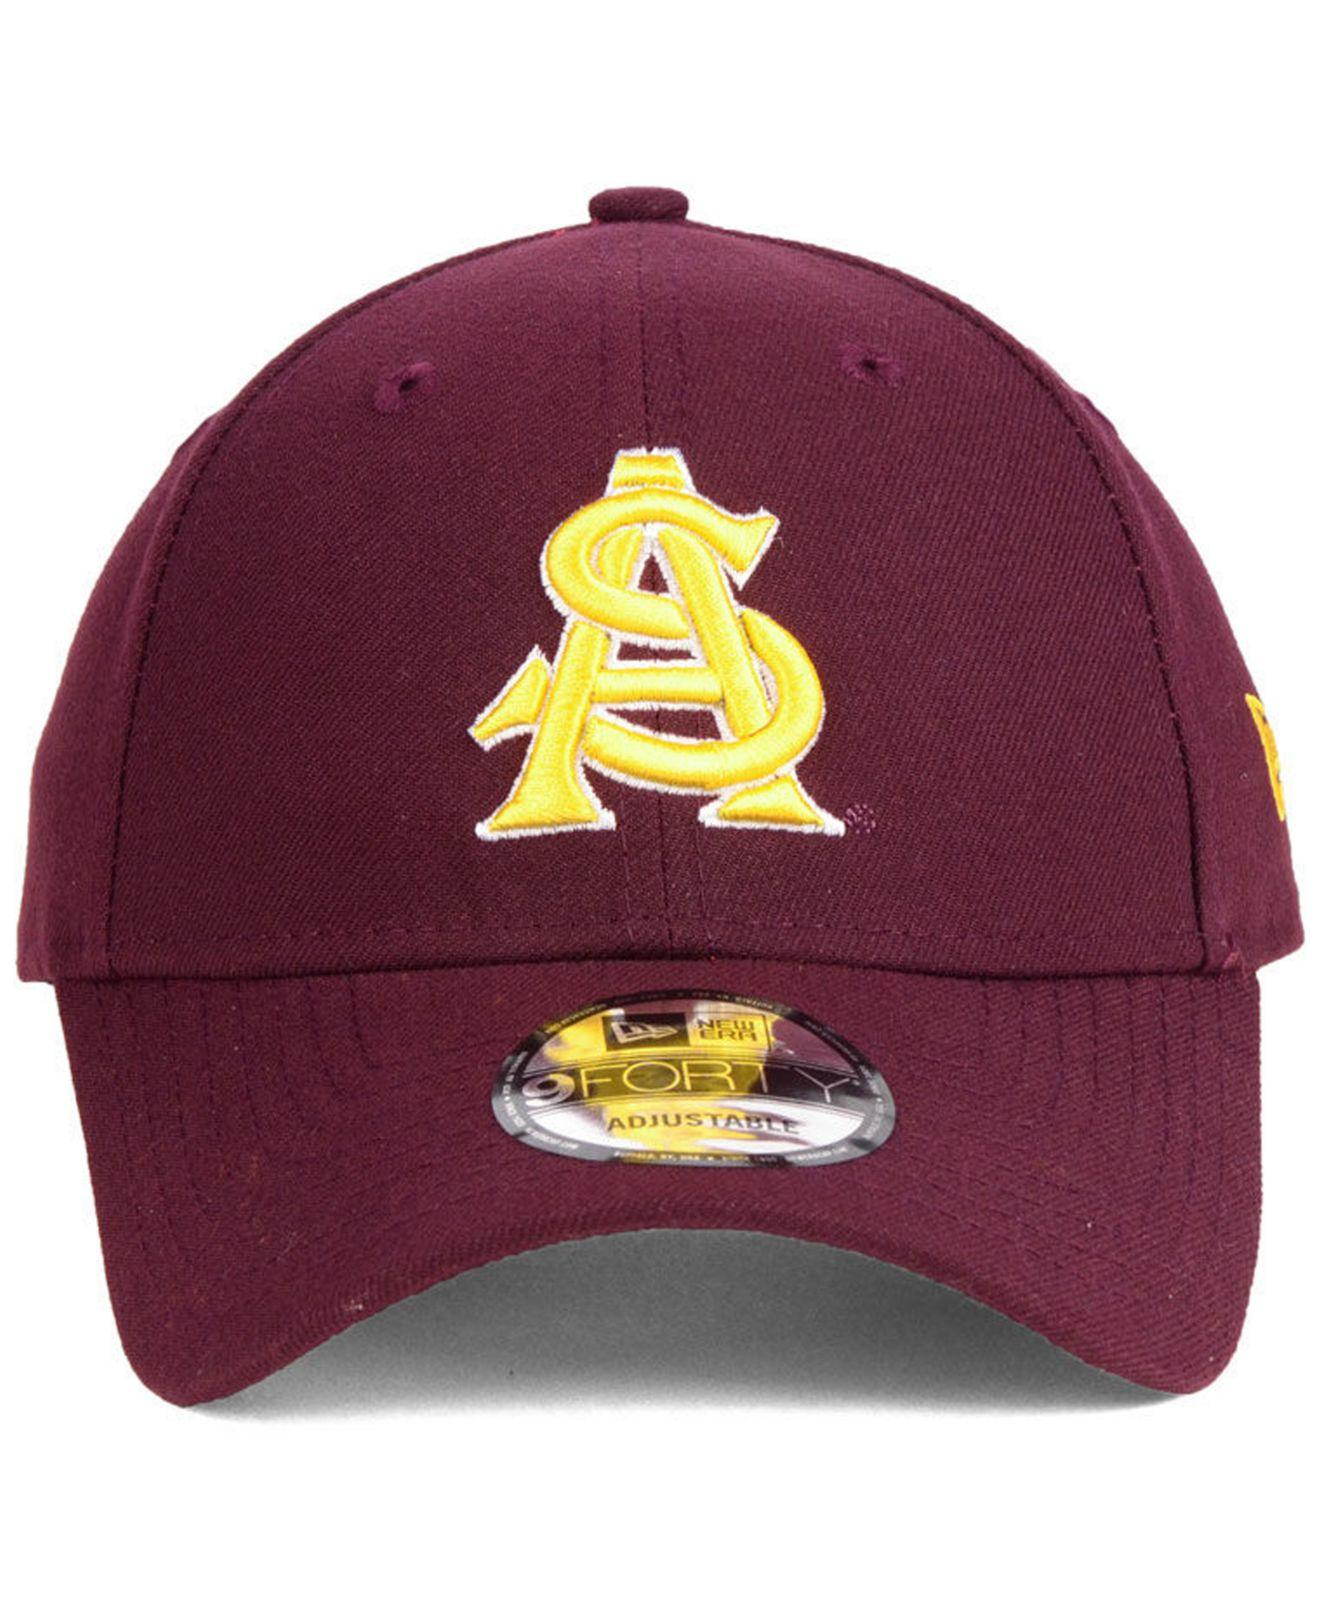 Lyst - KTZ Arizona State Sun Devils League 9forty Adjustable Cap in Purple  for Men 7b84dcb48146